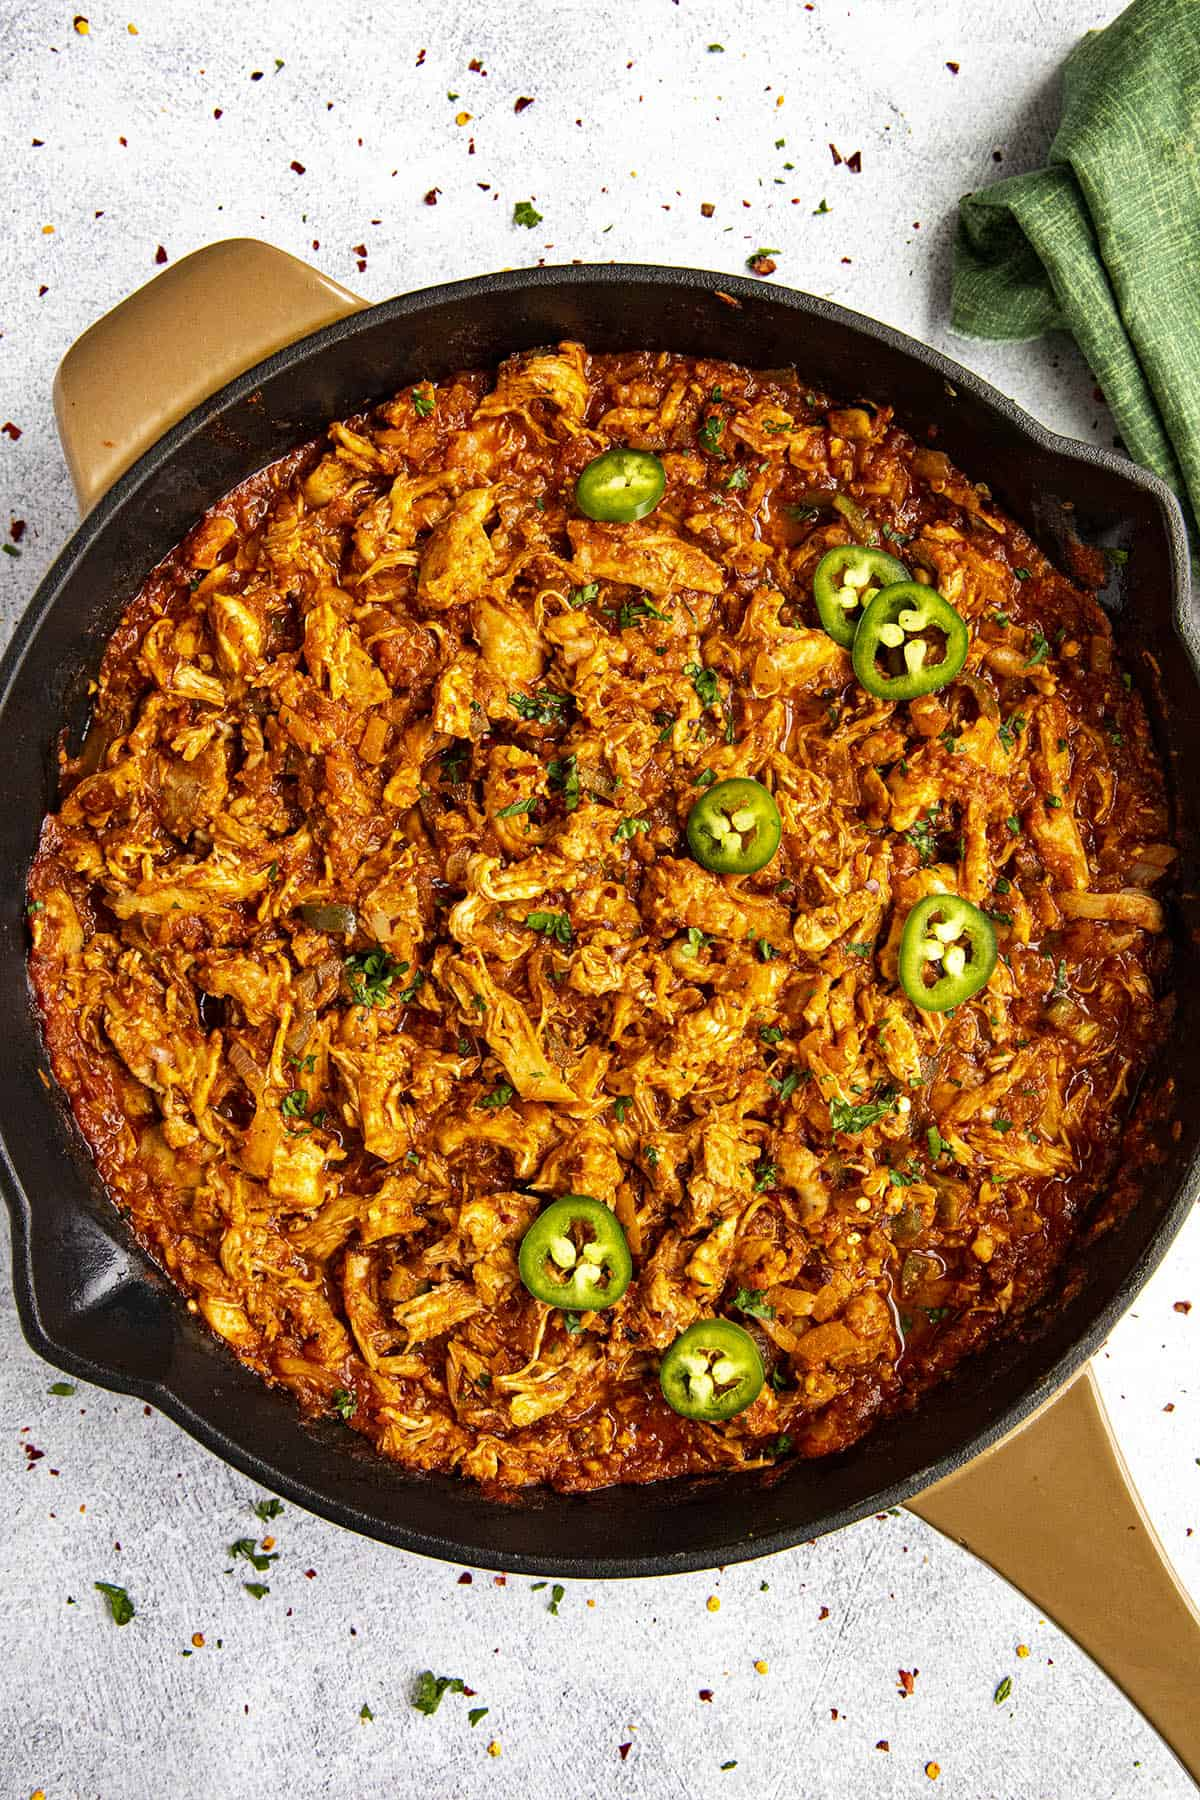 Spicy shredded Chicken Tinga in a pan